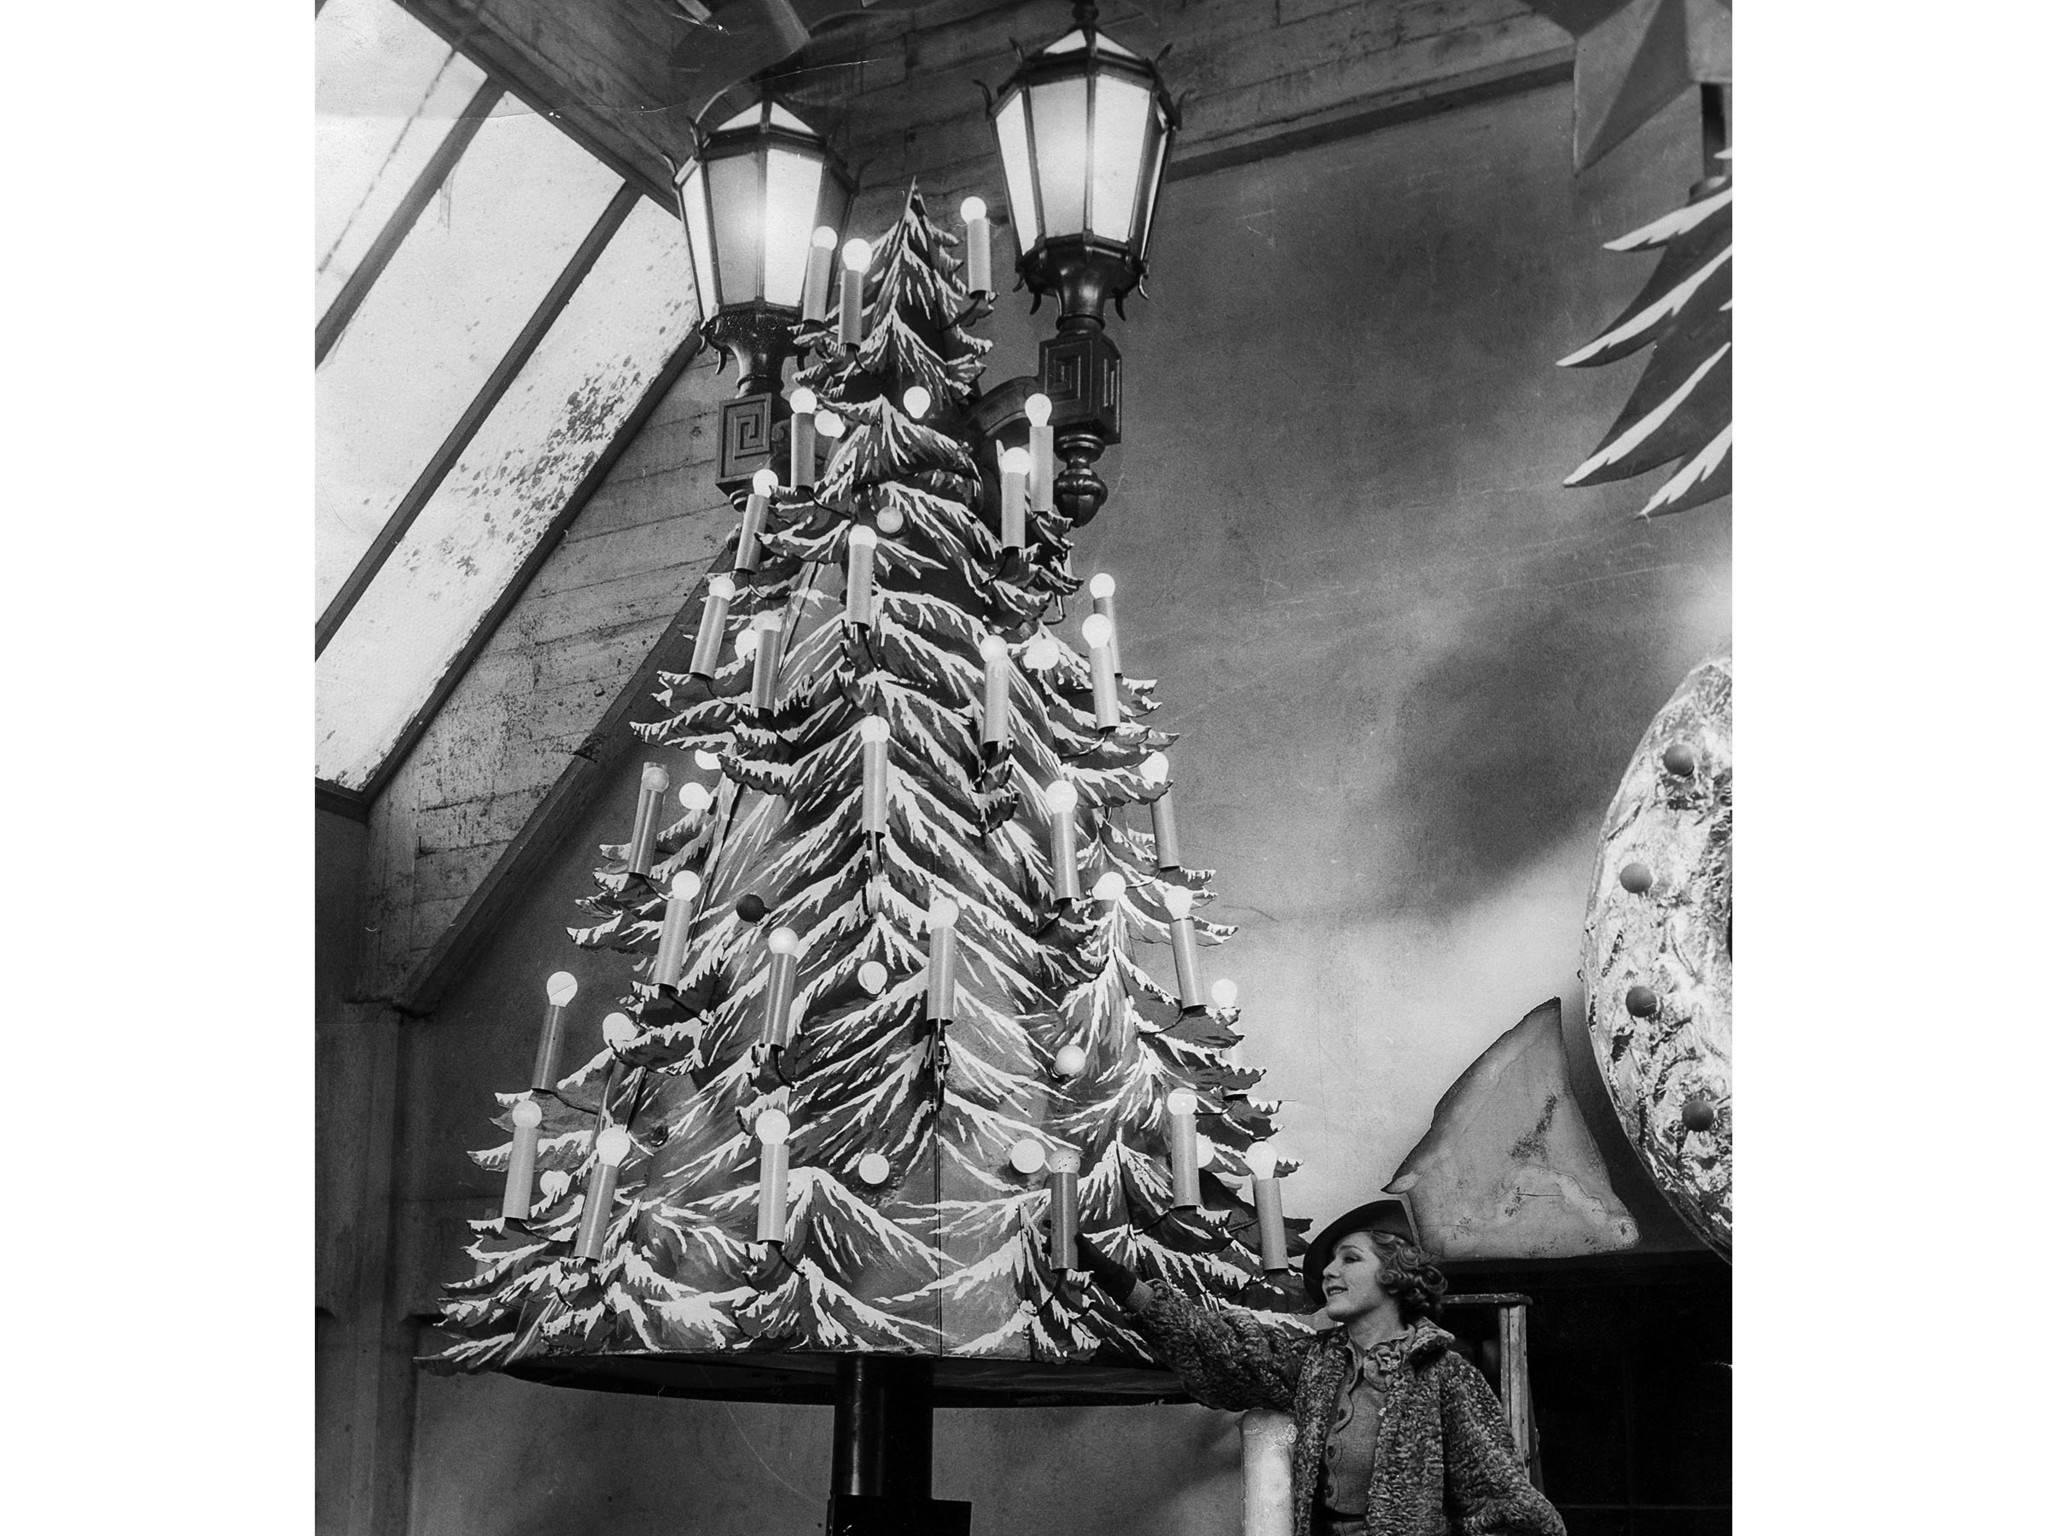 Nov. 16, 1935: Actress Mary Pickford poses next to one of the Christmas trees decorations that will